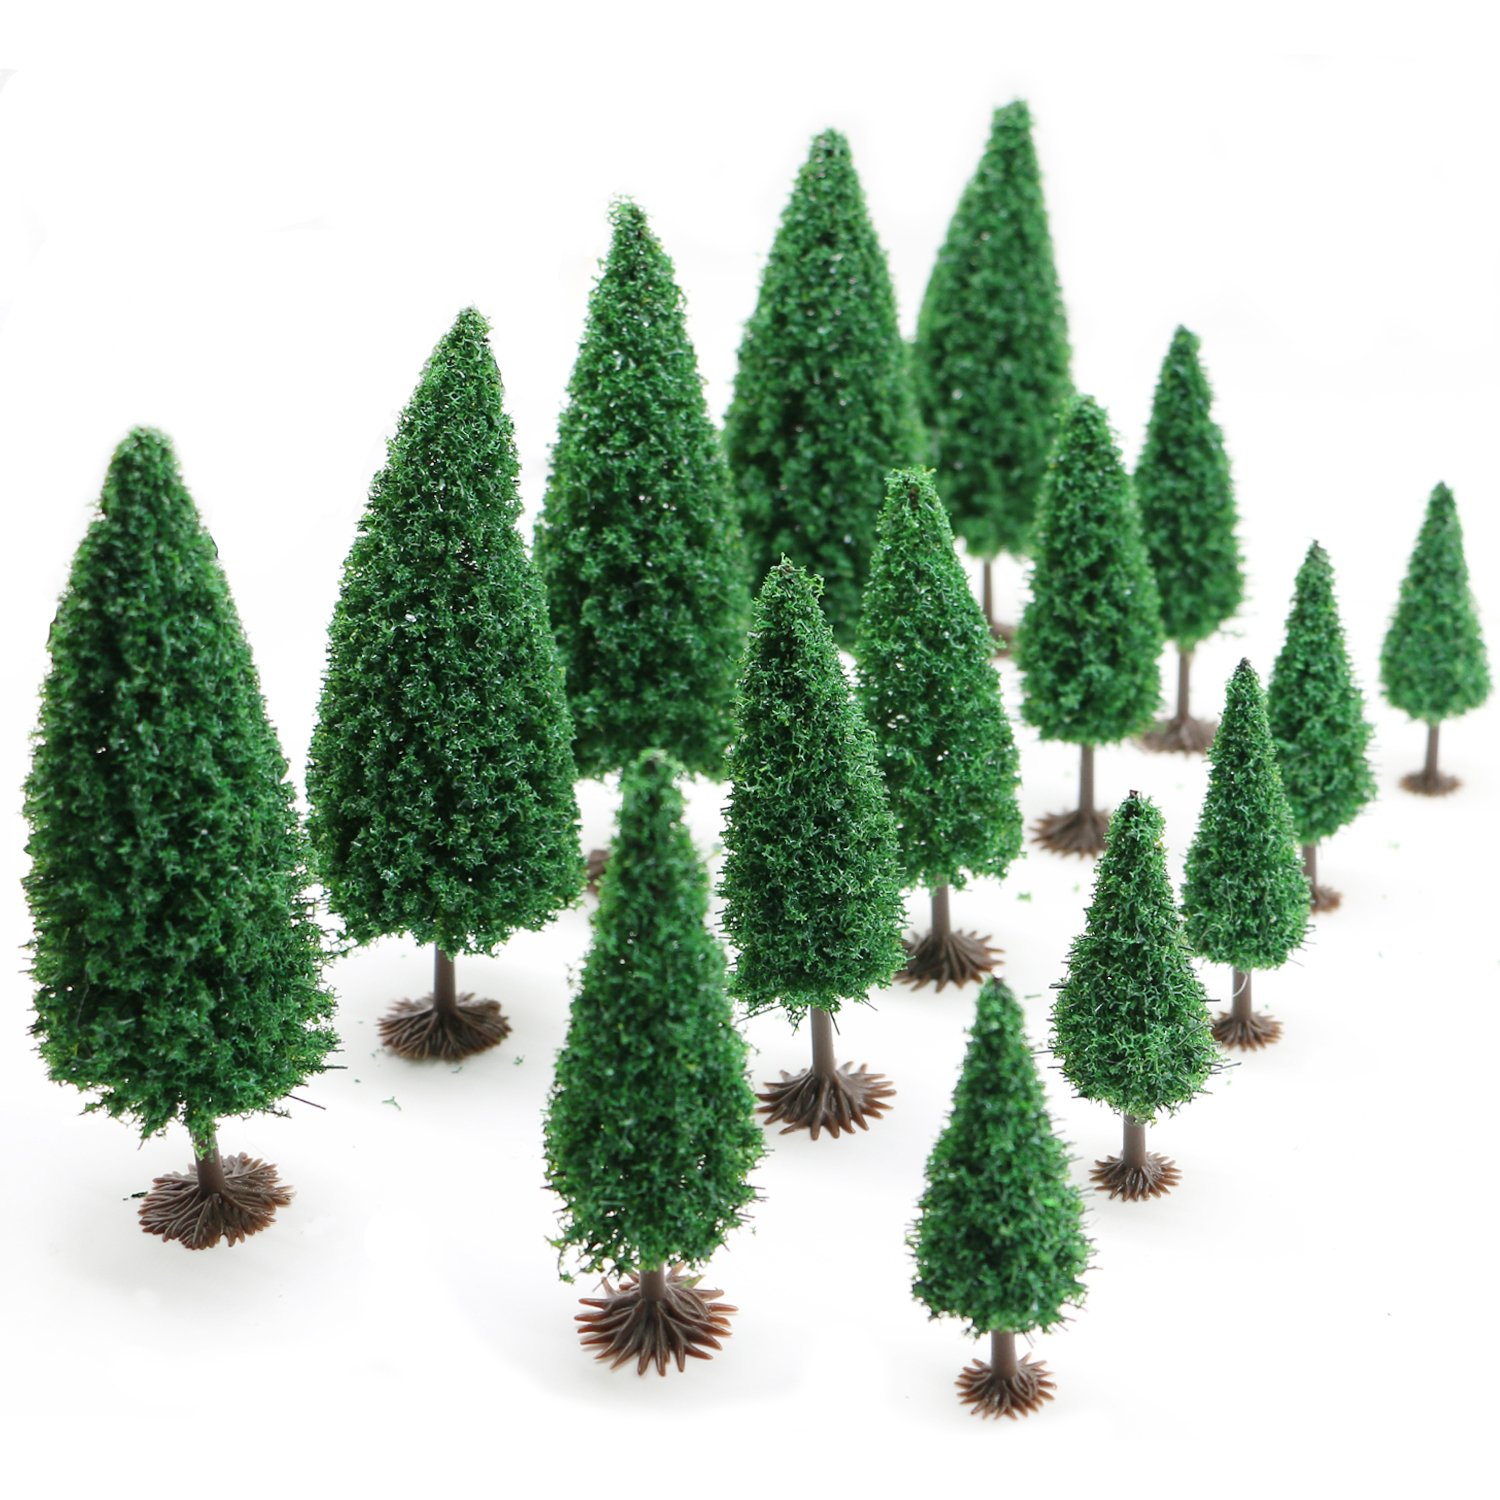 15pcs Mixed Model Trees with Base 2.6-4.3inch(6.5-11 cm),Jomass Model Train Scenery, Architecture Trees,Model Cedar Trees with Stands